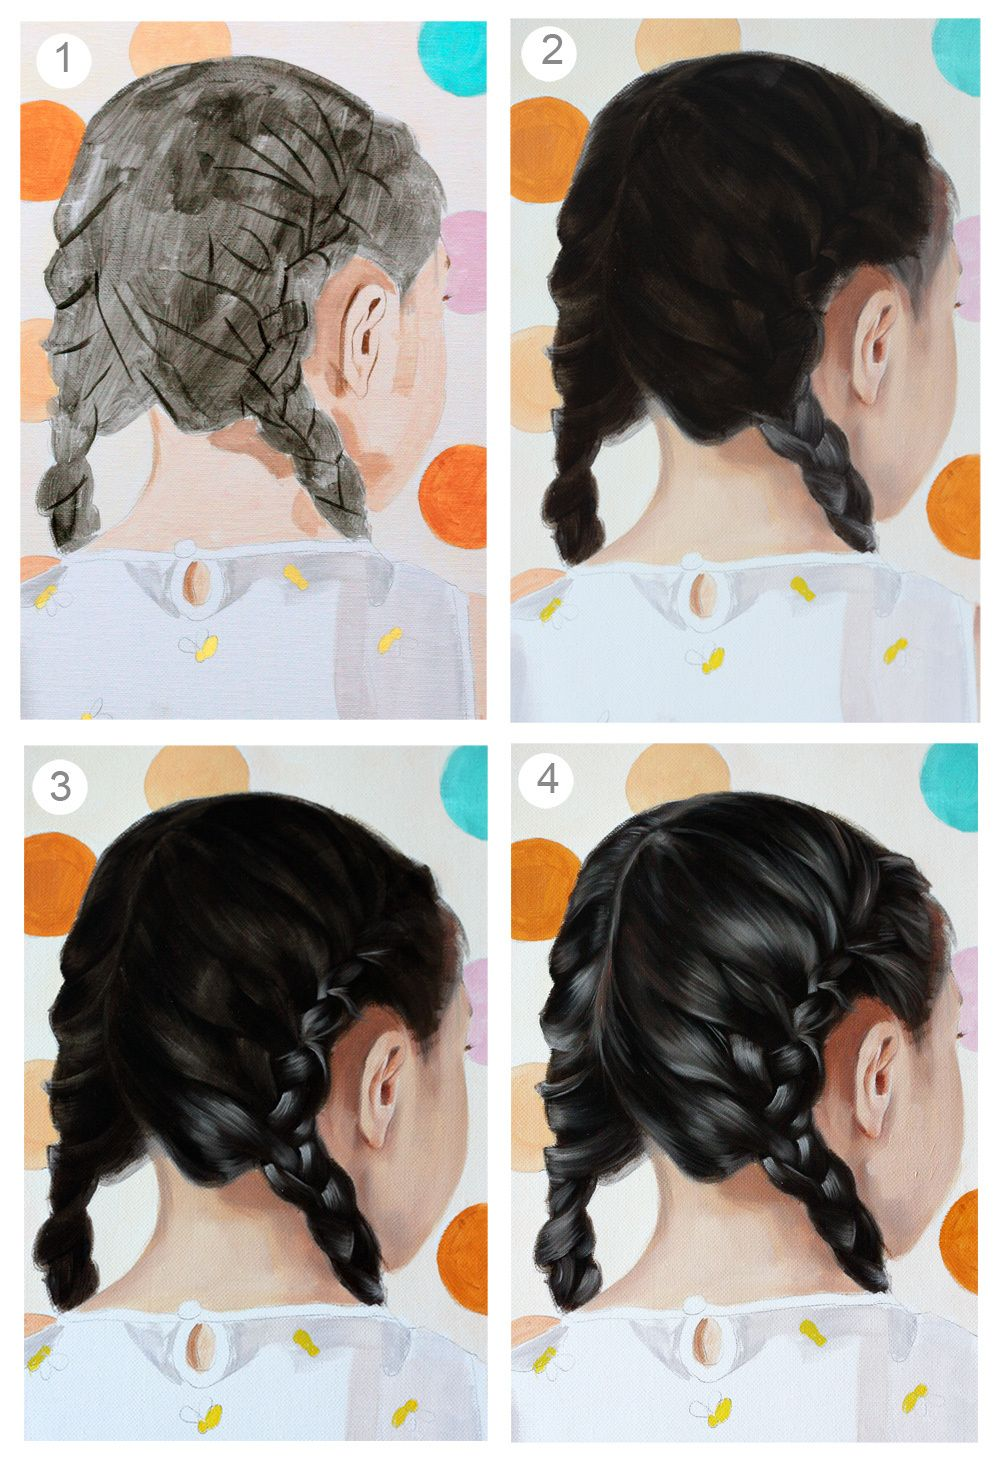 How To Paint Hair In Oils Wolfgang And Rose Art Hair Painting How To Draw Hair Oil Painting Inspiration